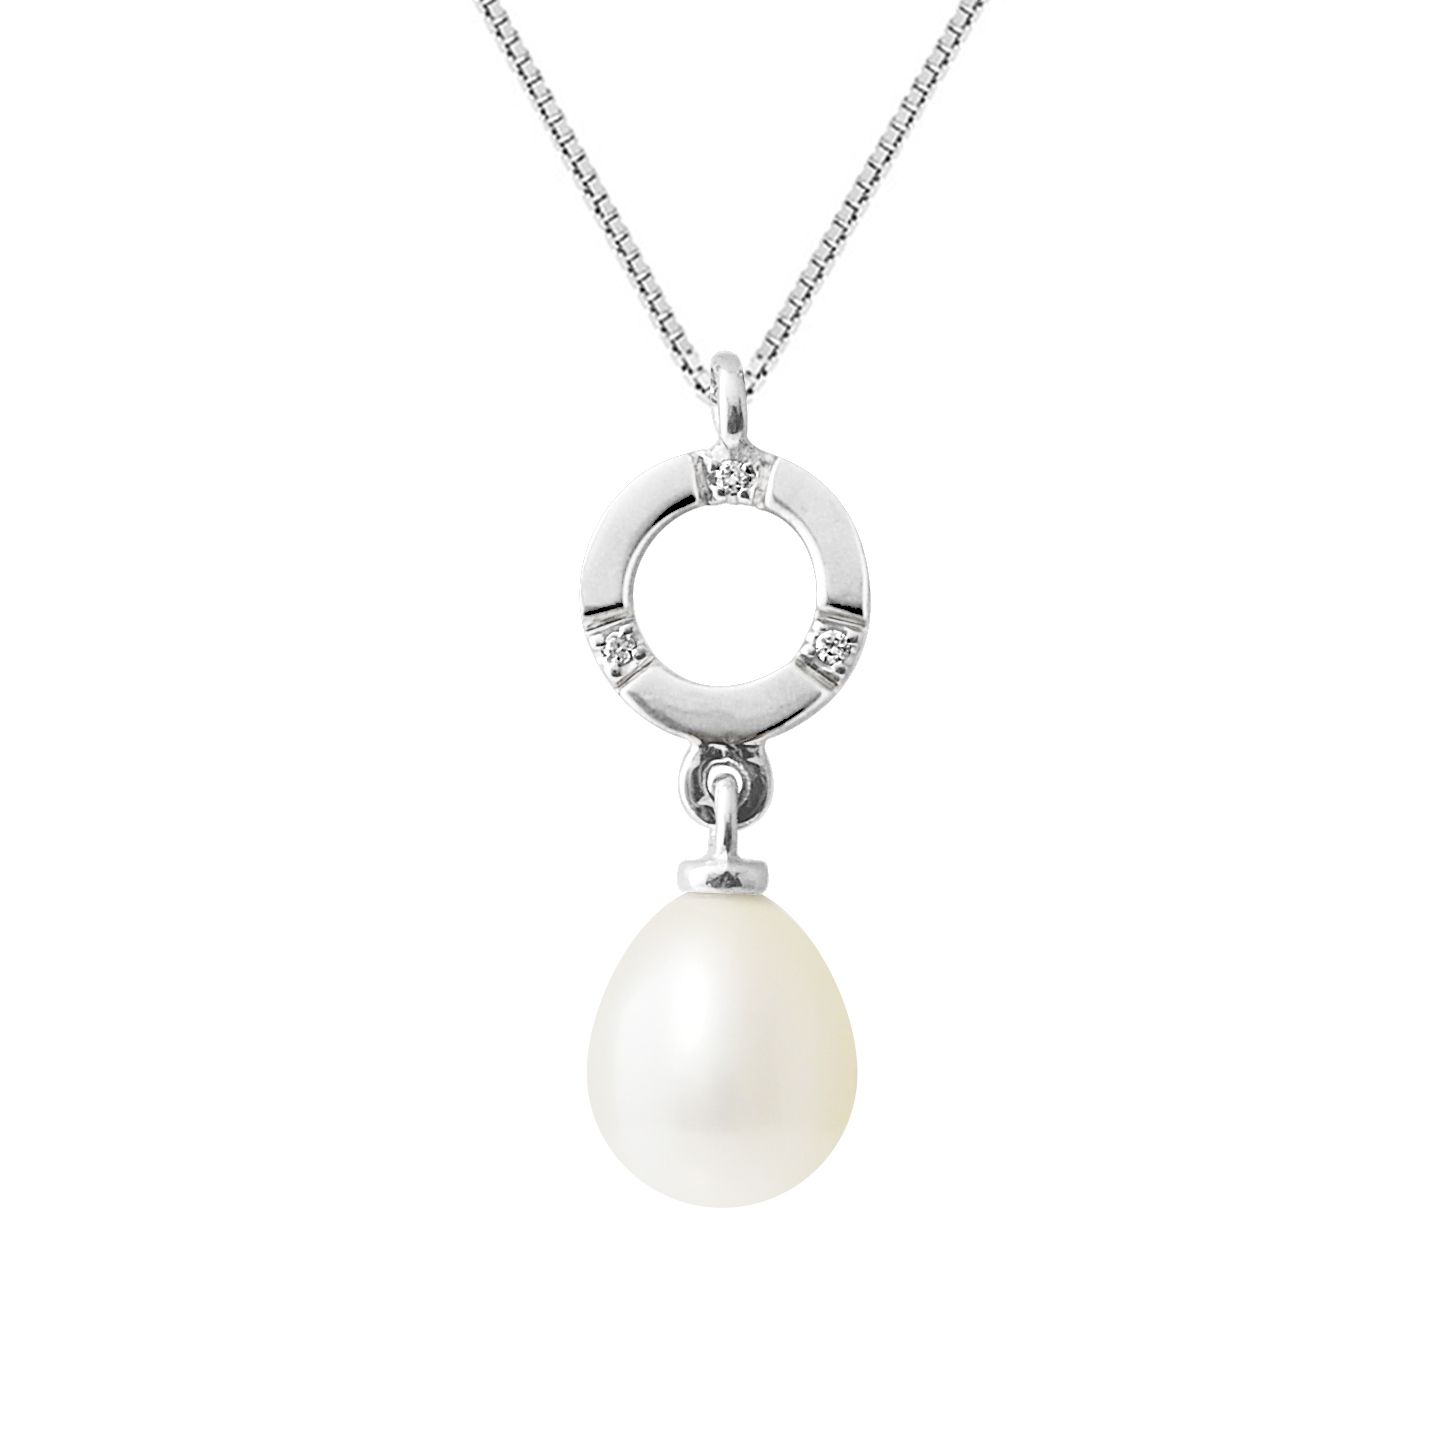 DIADEMA - Pendant - White Gold and Real Freshwater Pearls - White